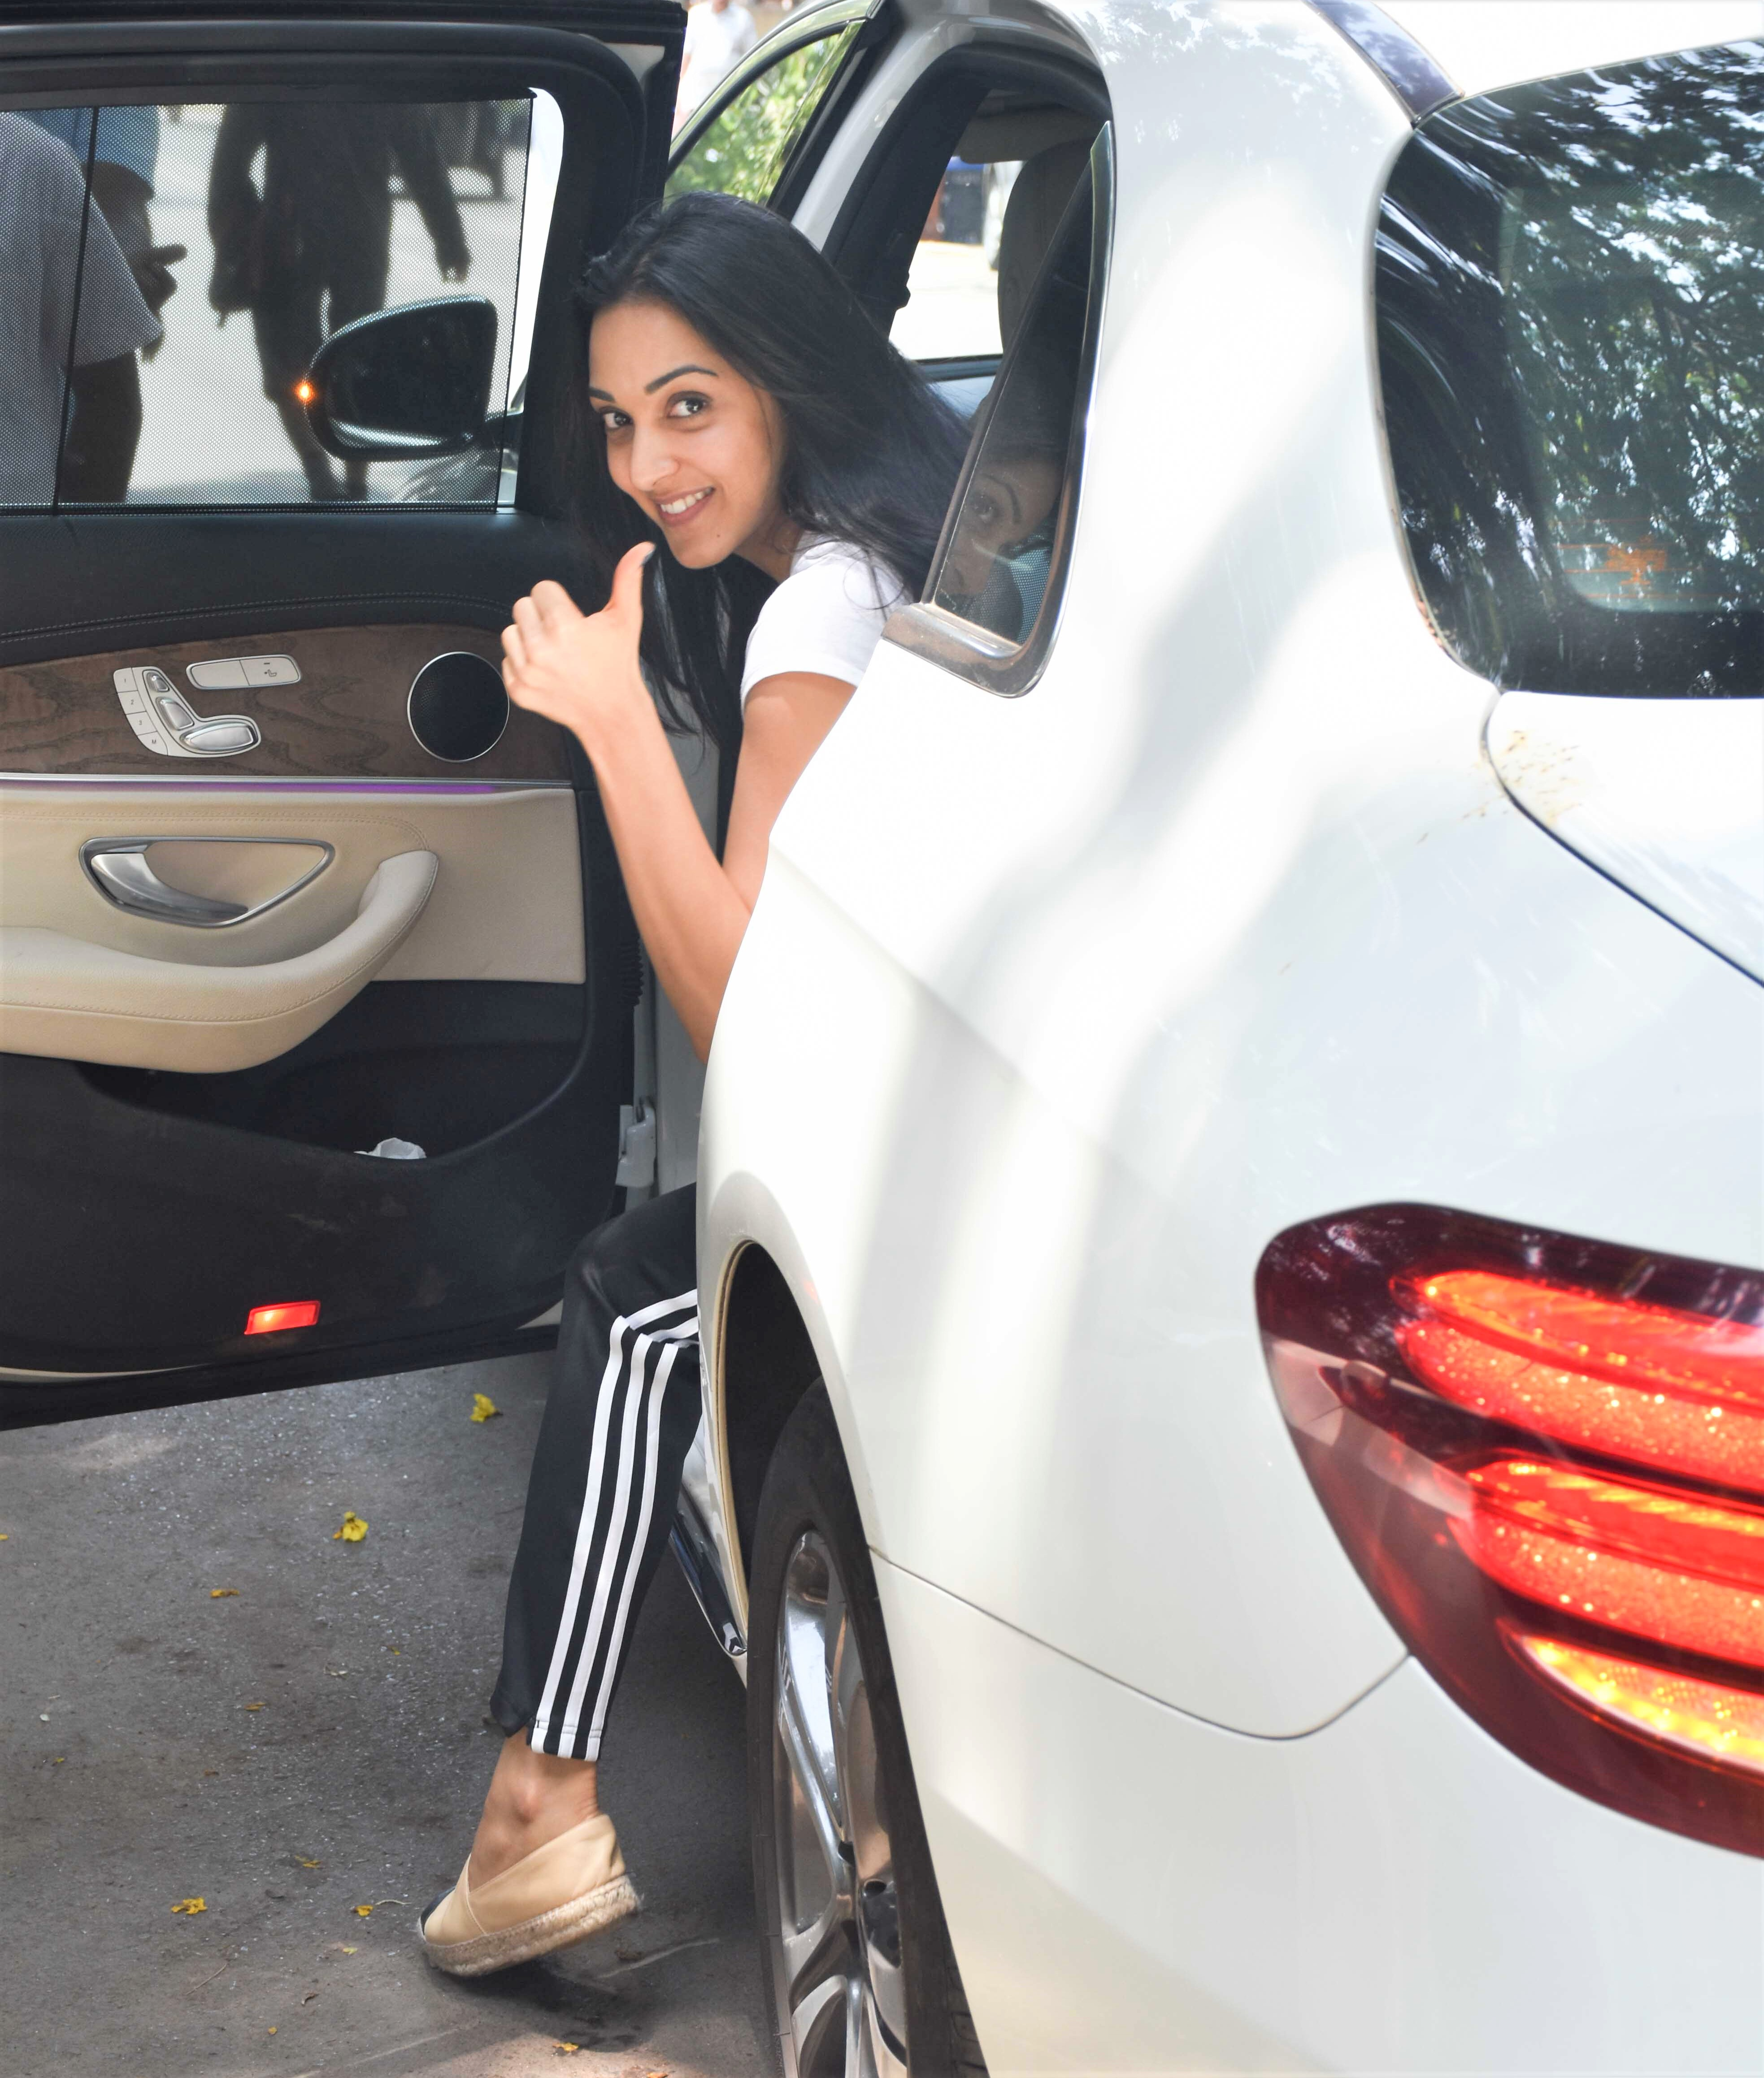 Kiara Advani Goes Make Up Free While Out and About